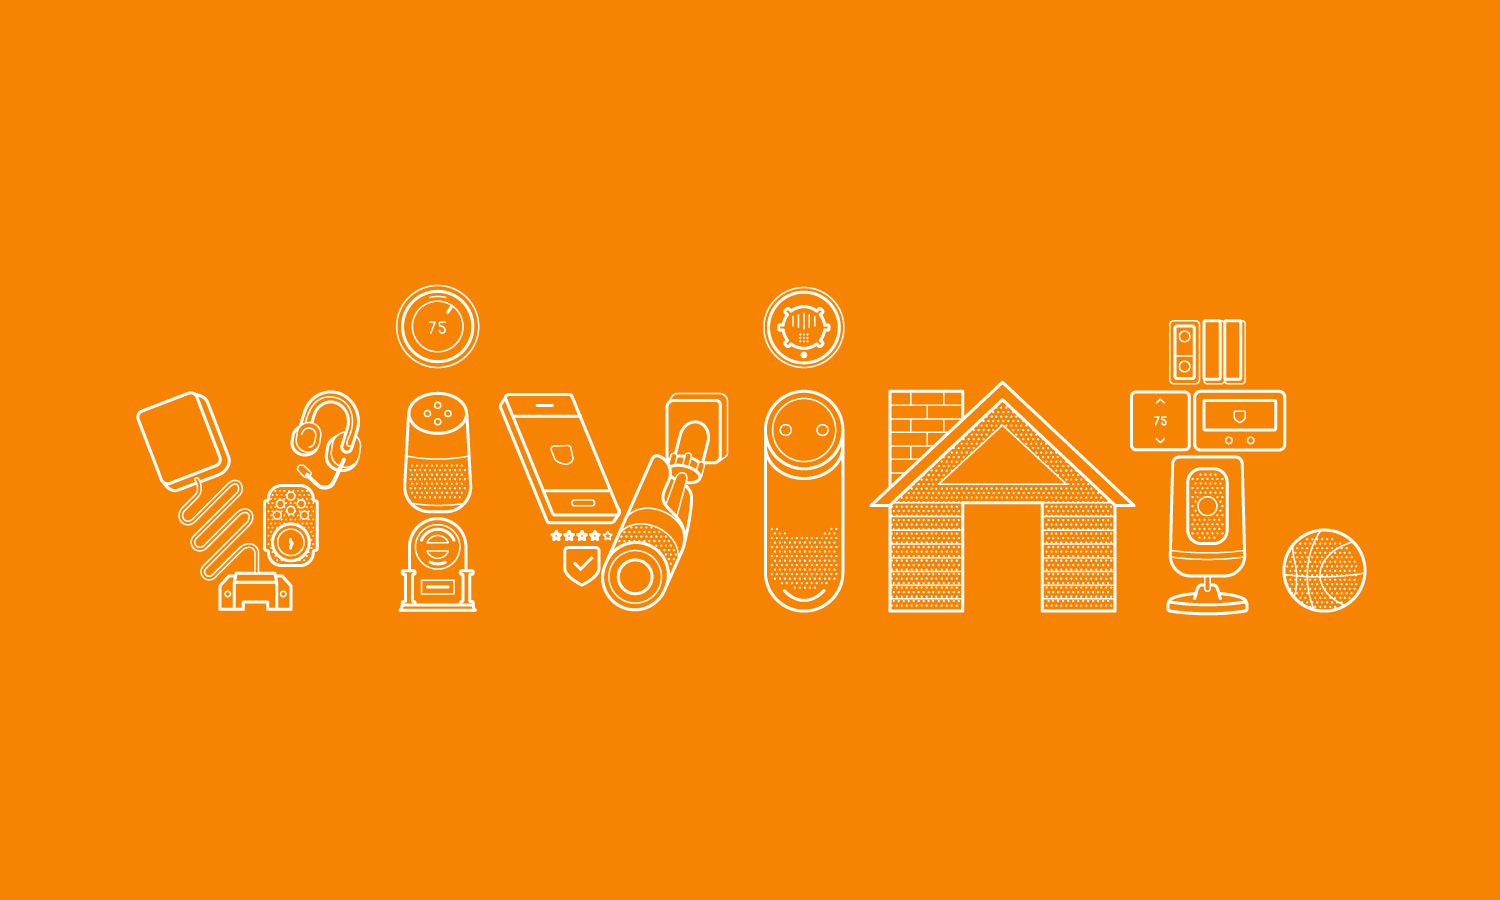 vivint-logo-illustration